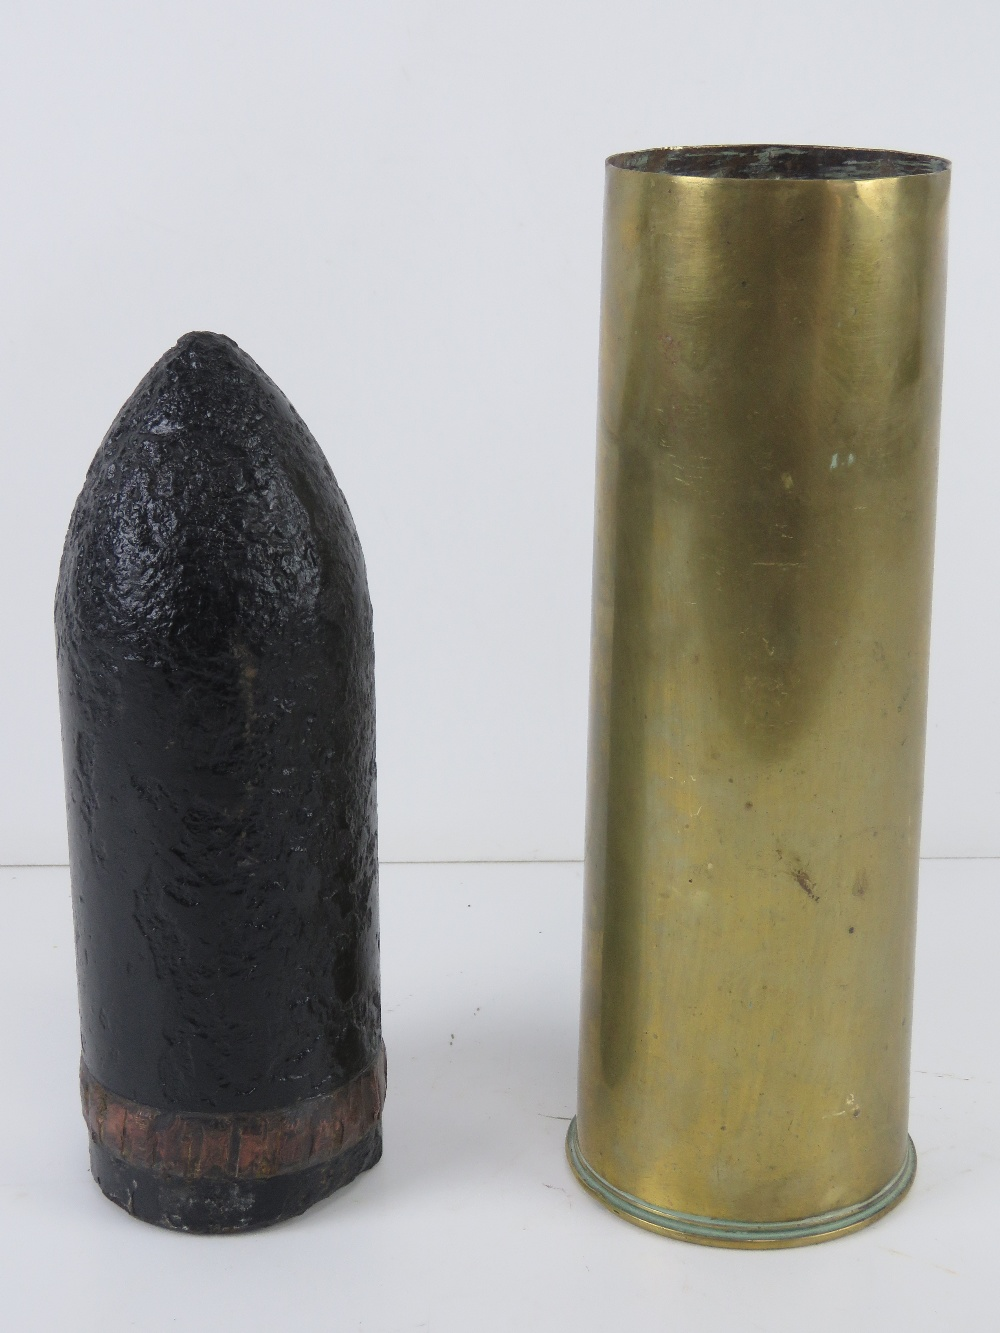 A 25pr Mk2/1 shell casing with shell head. - Image 2 of 3